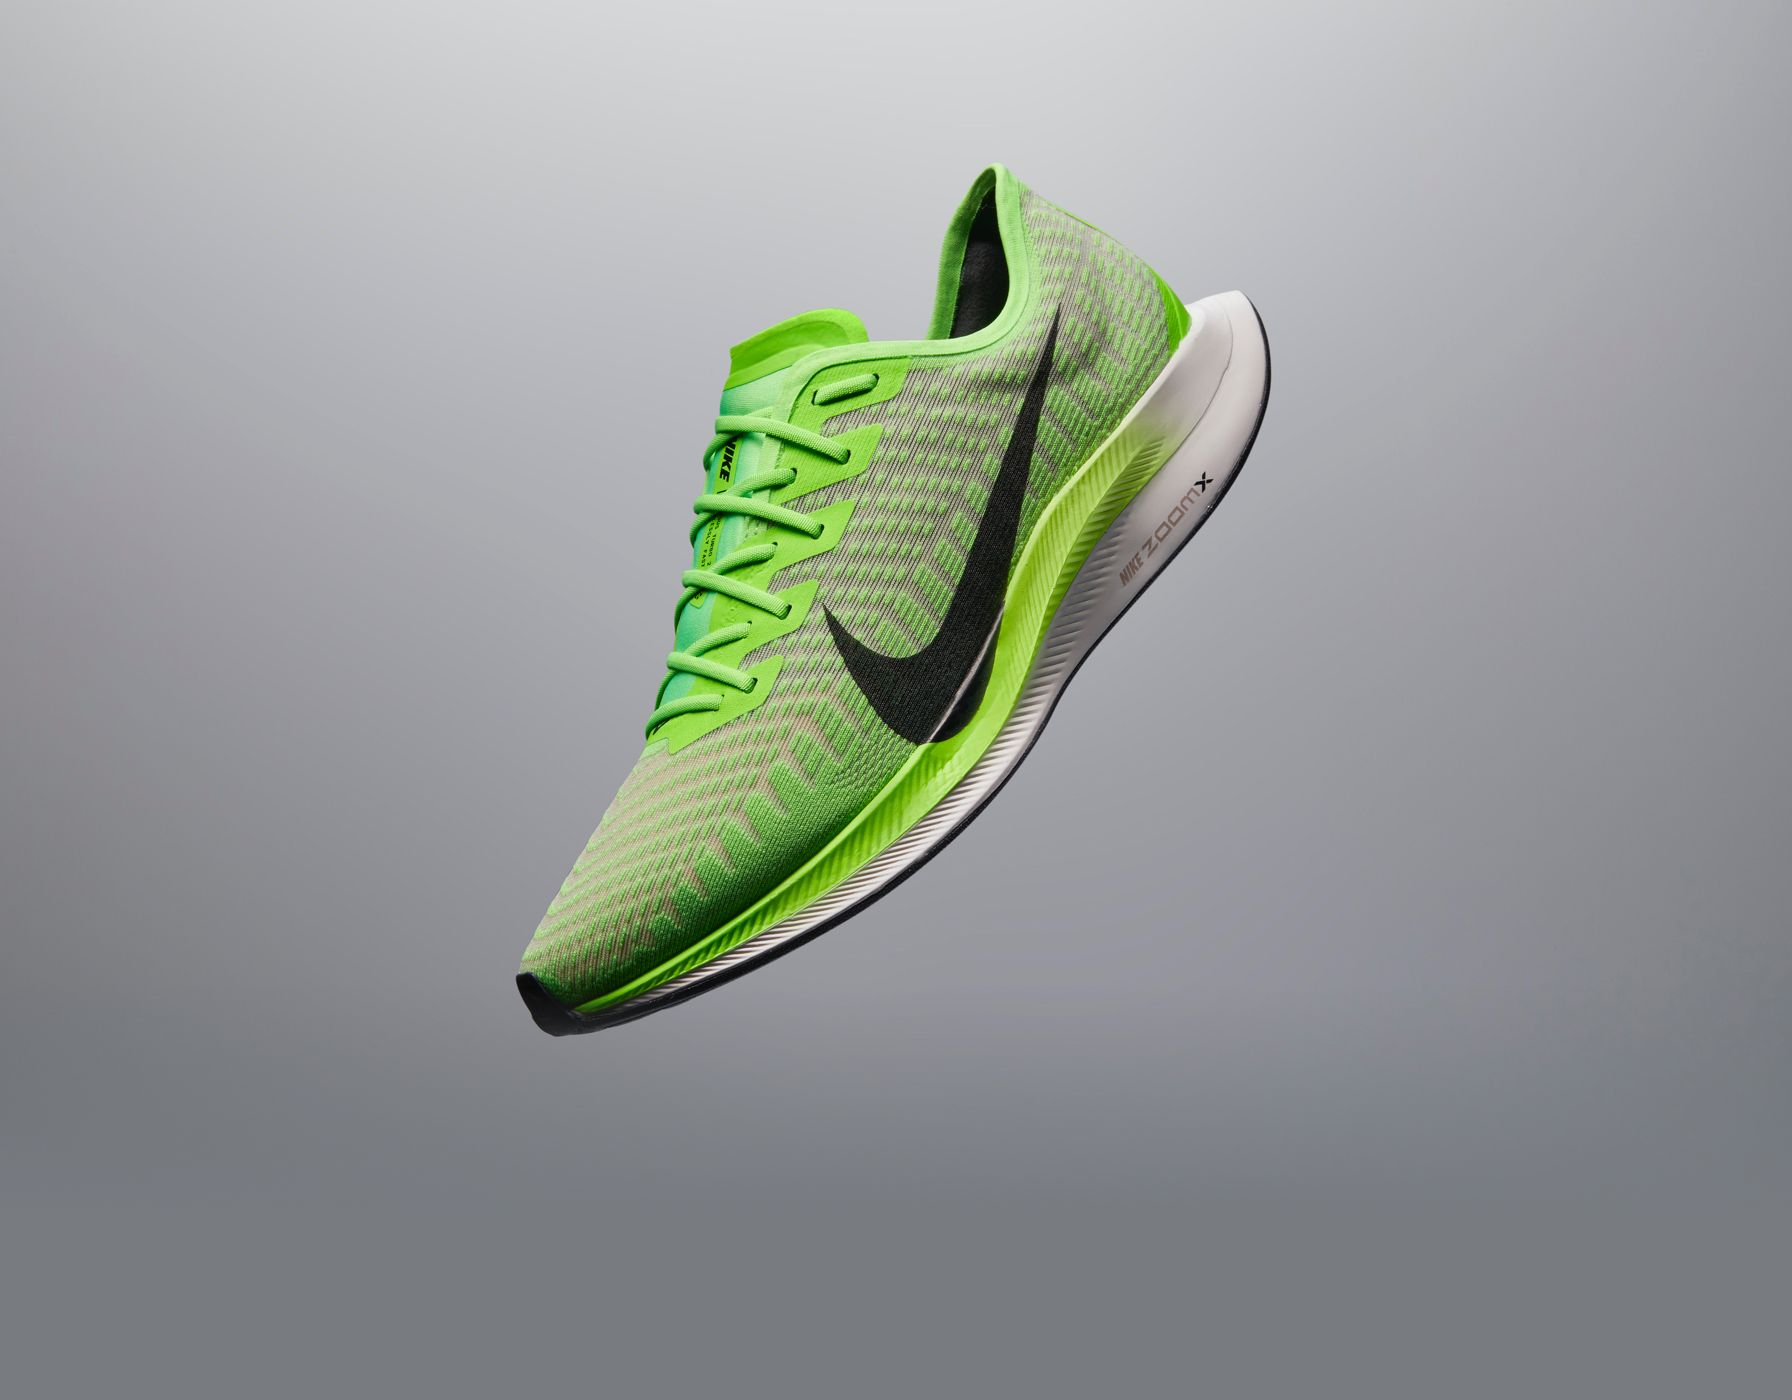 reputable site 0baed a79dc Nike Men s Shoes, Clothing and Gear. Nike.com